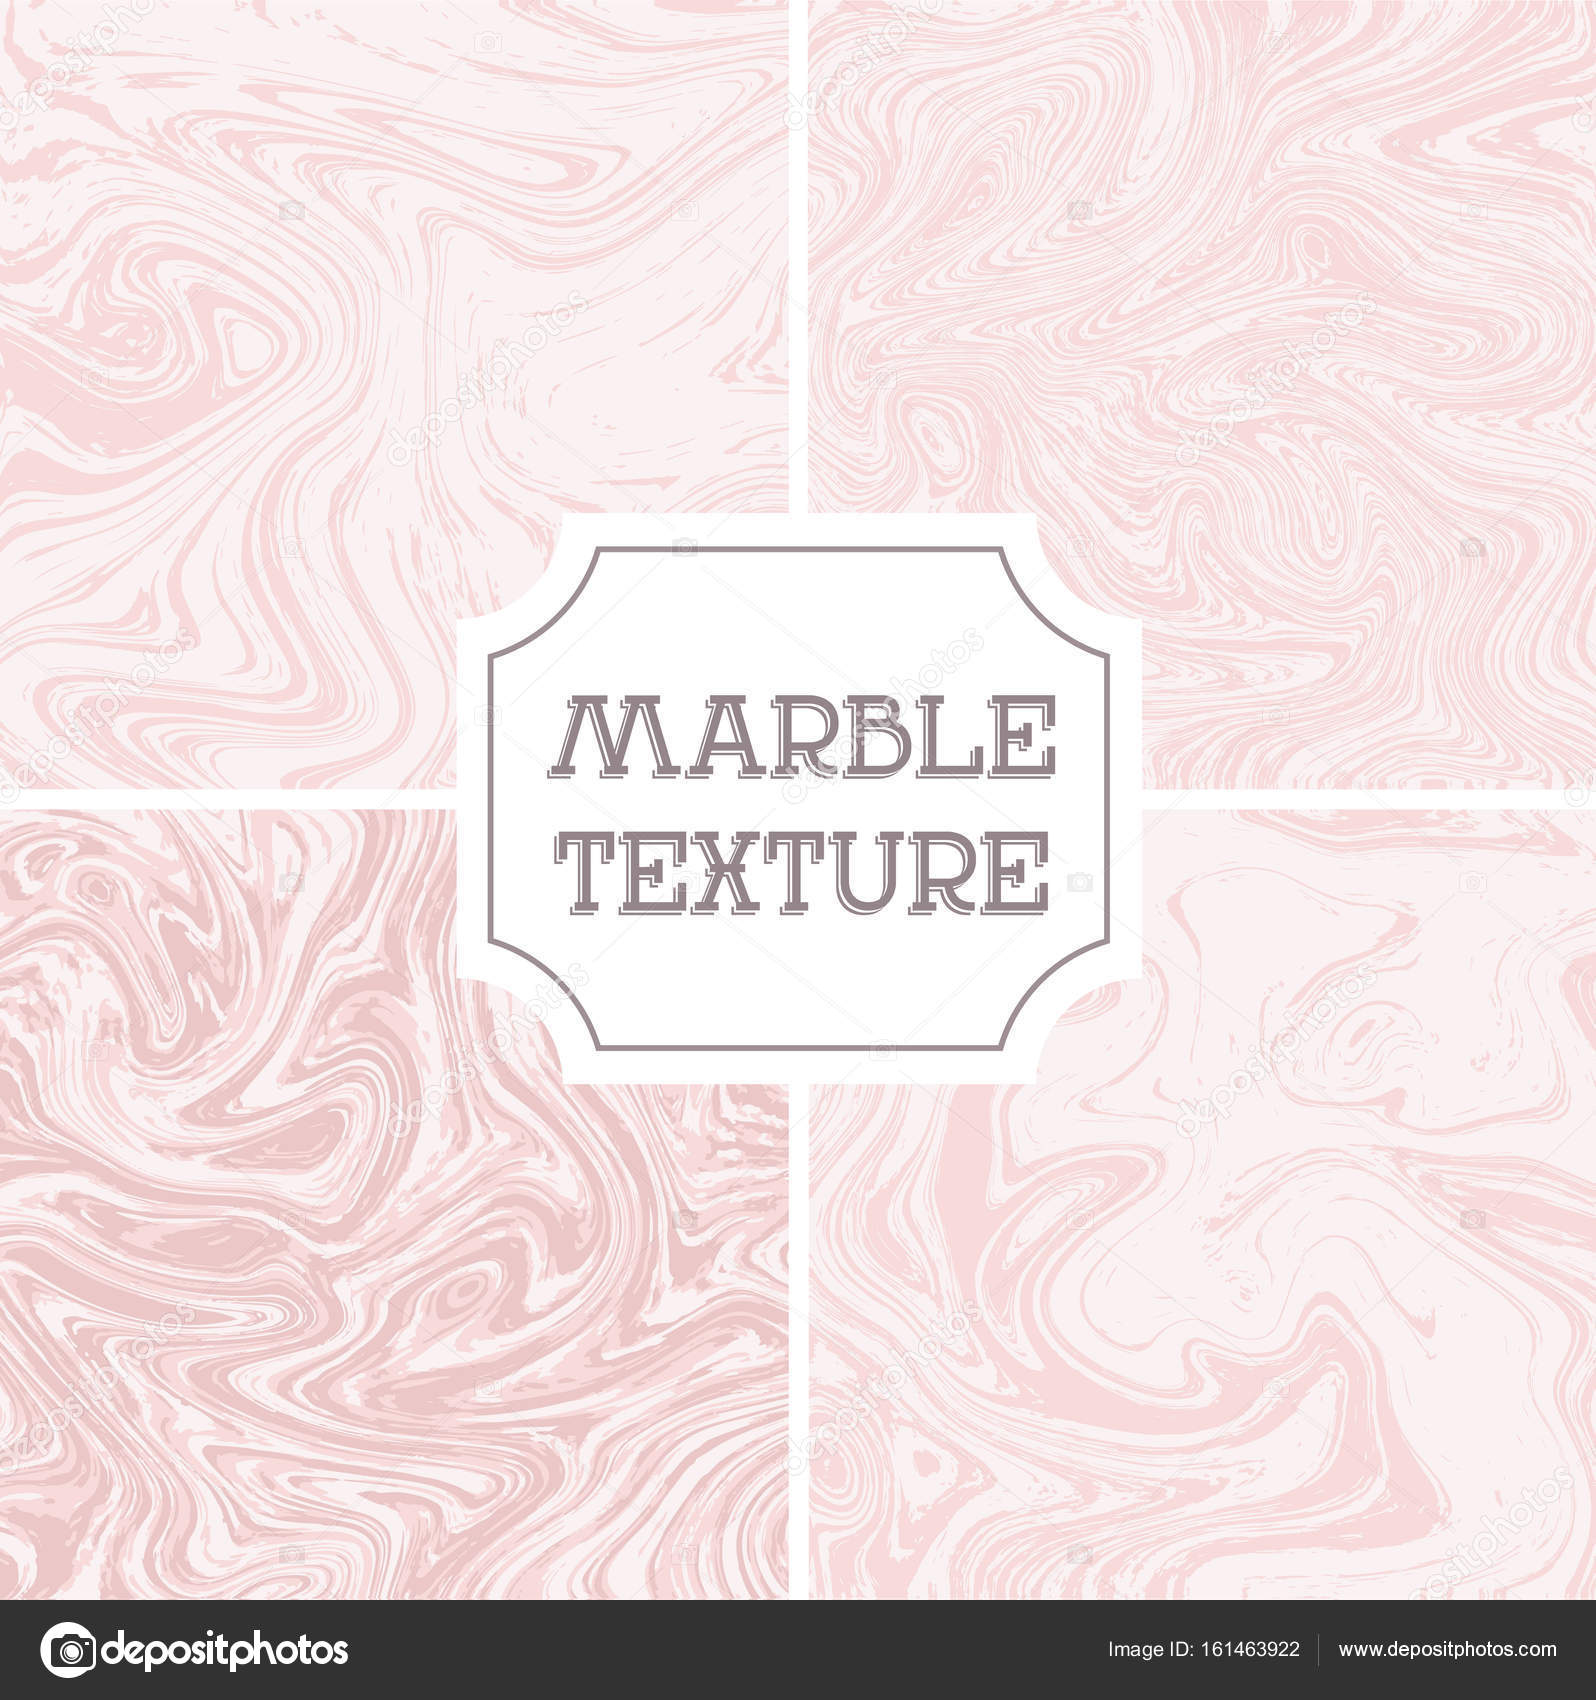 Top Wallpaper Marble Light Pink - depositphotos_161463922-stock-illustration-light-white-and-pink-marble  Picture_546727.jpg